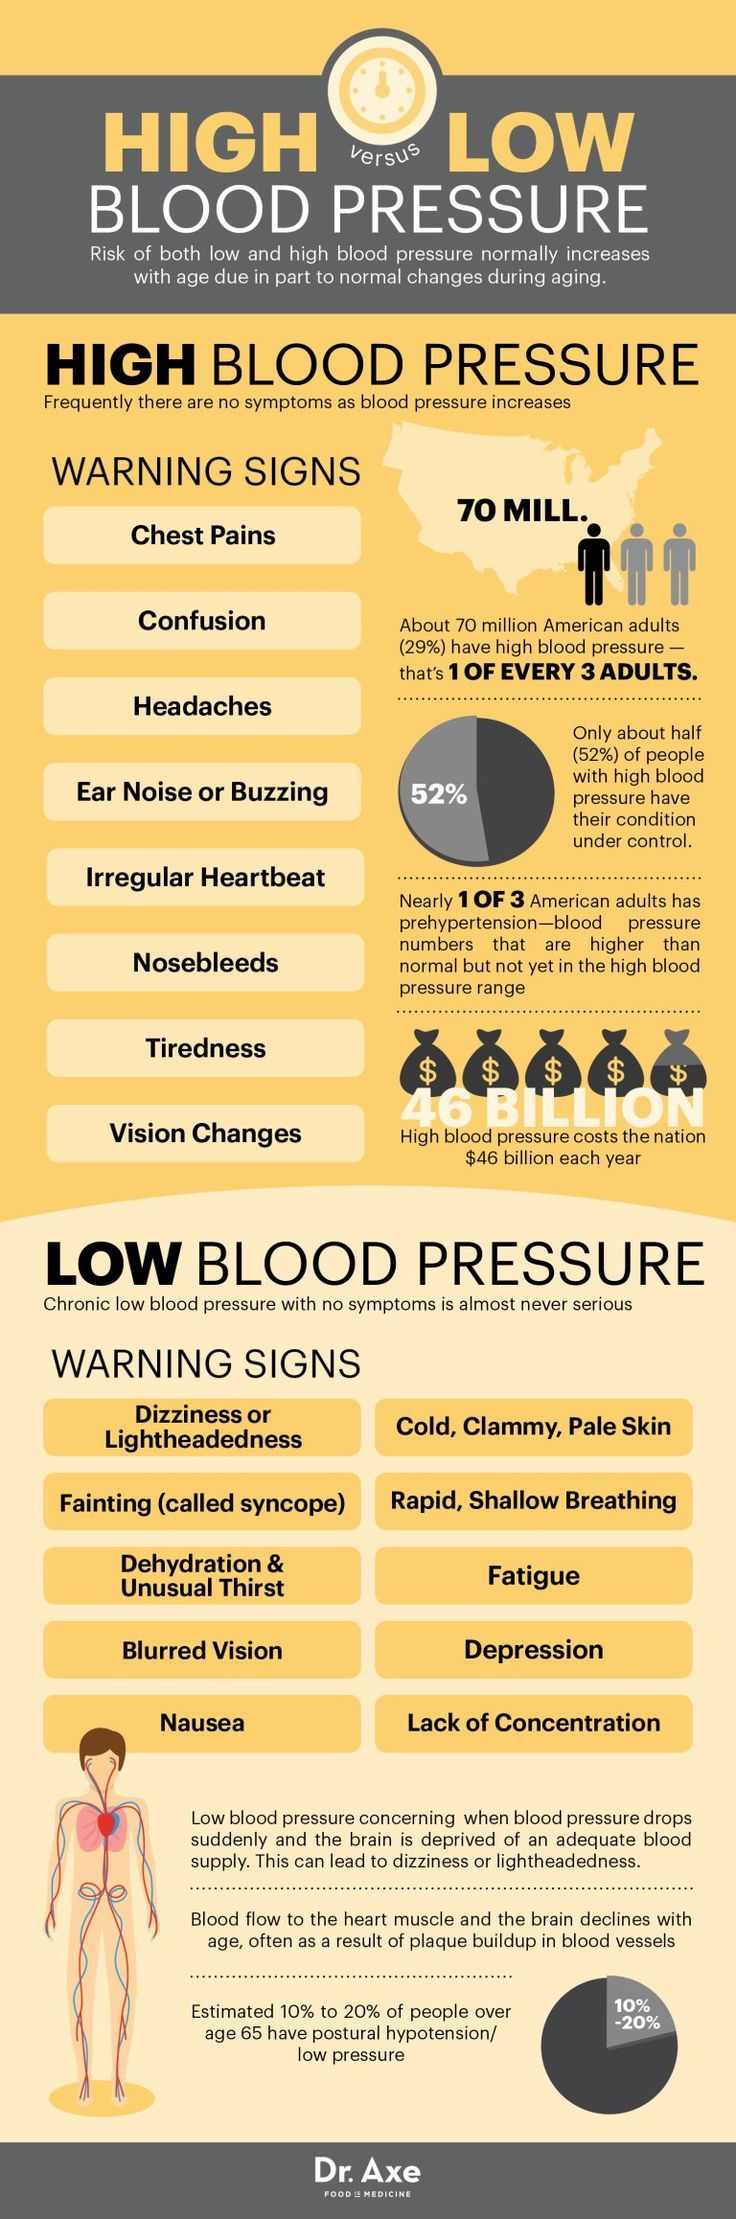 The risk of low or high blood pressure normally increases with age. It usually occurs as a part of the aging process. So, if you feel  you're at risk of suffering from low or high blood pressure, given below are a list of symptoms you need to check on   Source:http://draxe.com/